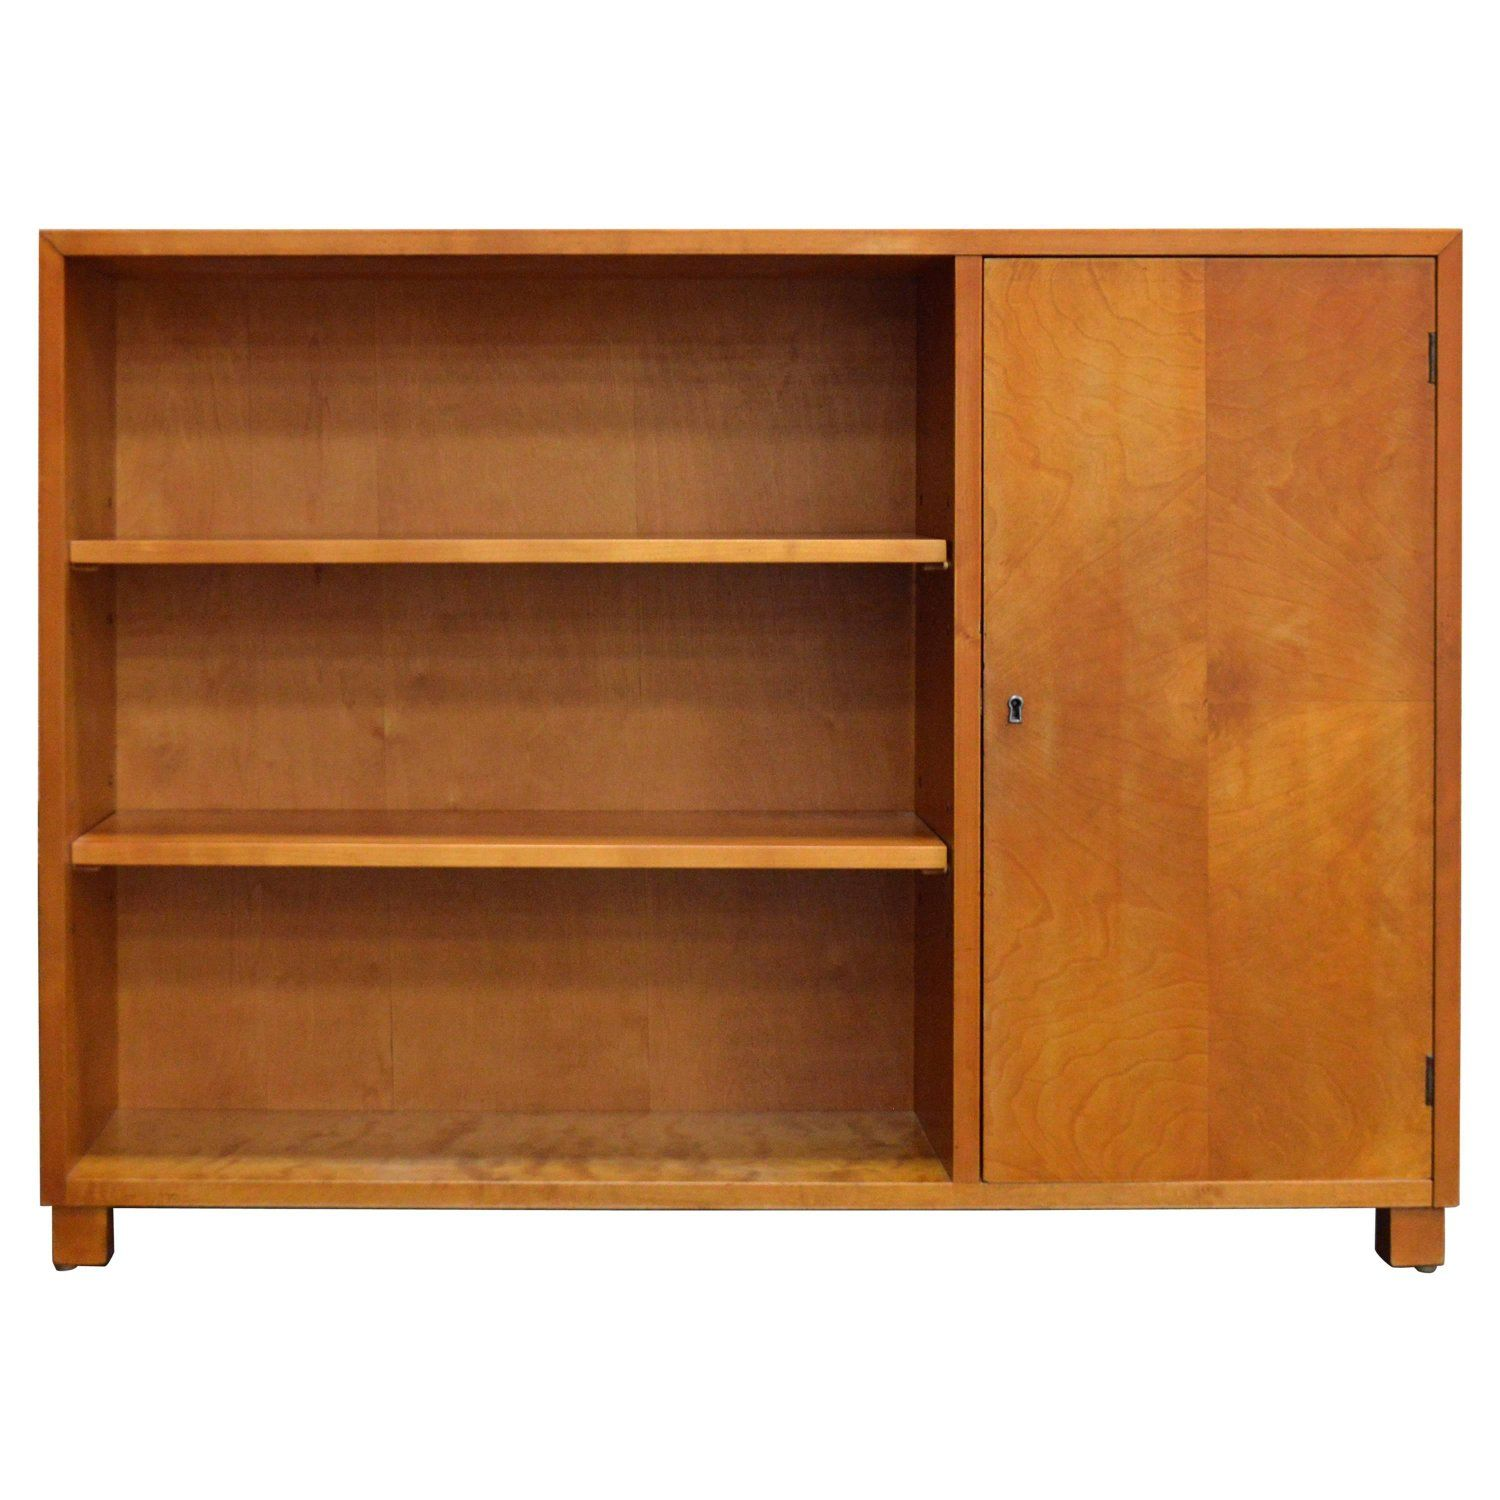 Swedish Art Deco Functionalist Golden Birch Cabinet ...